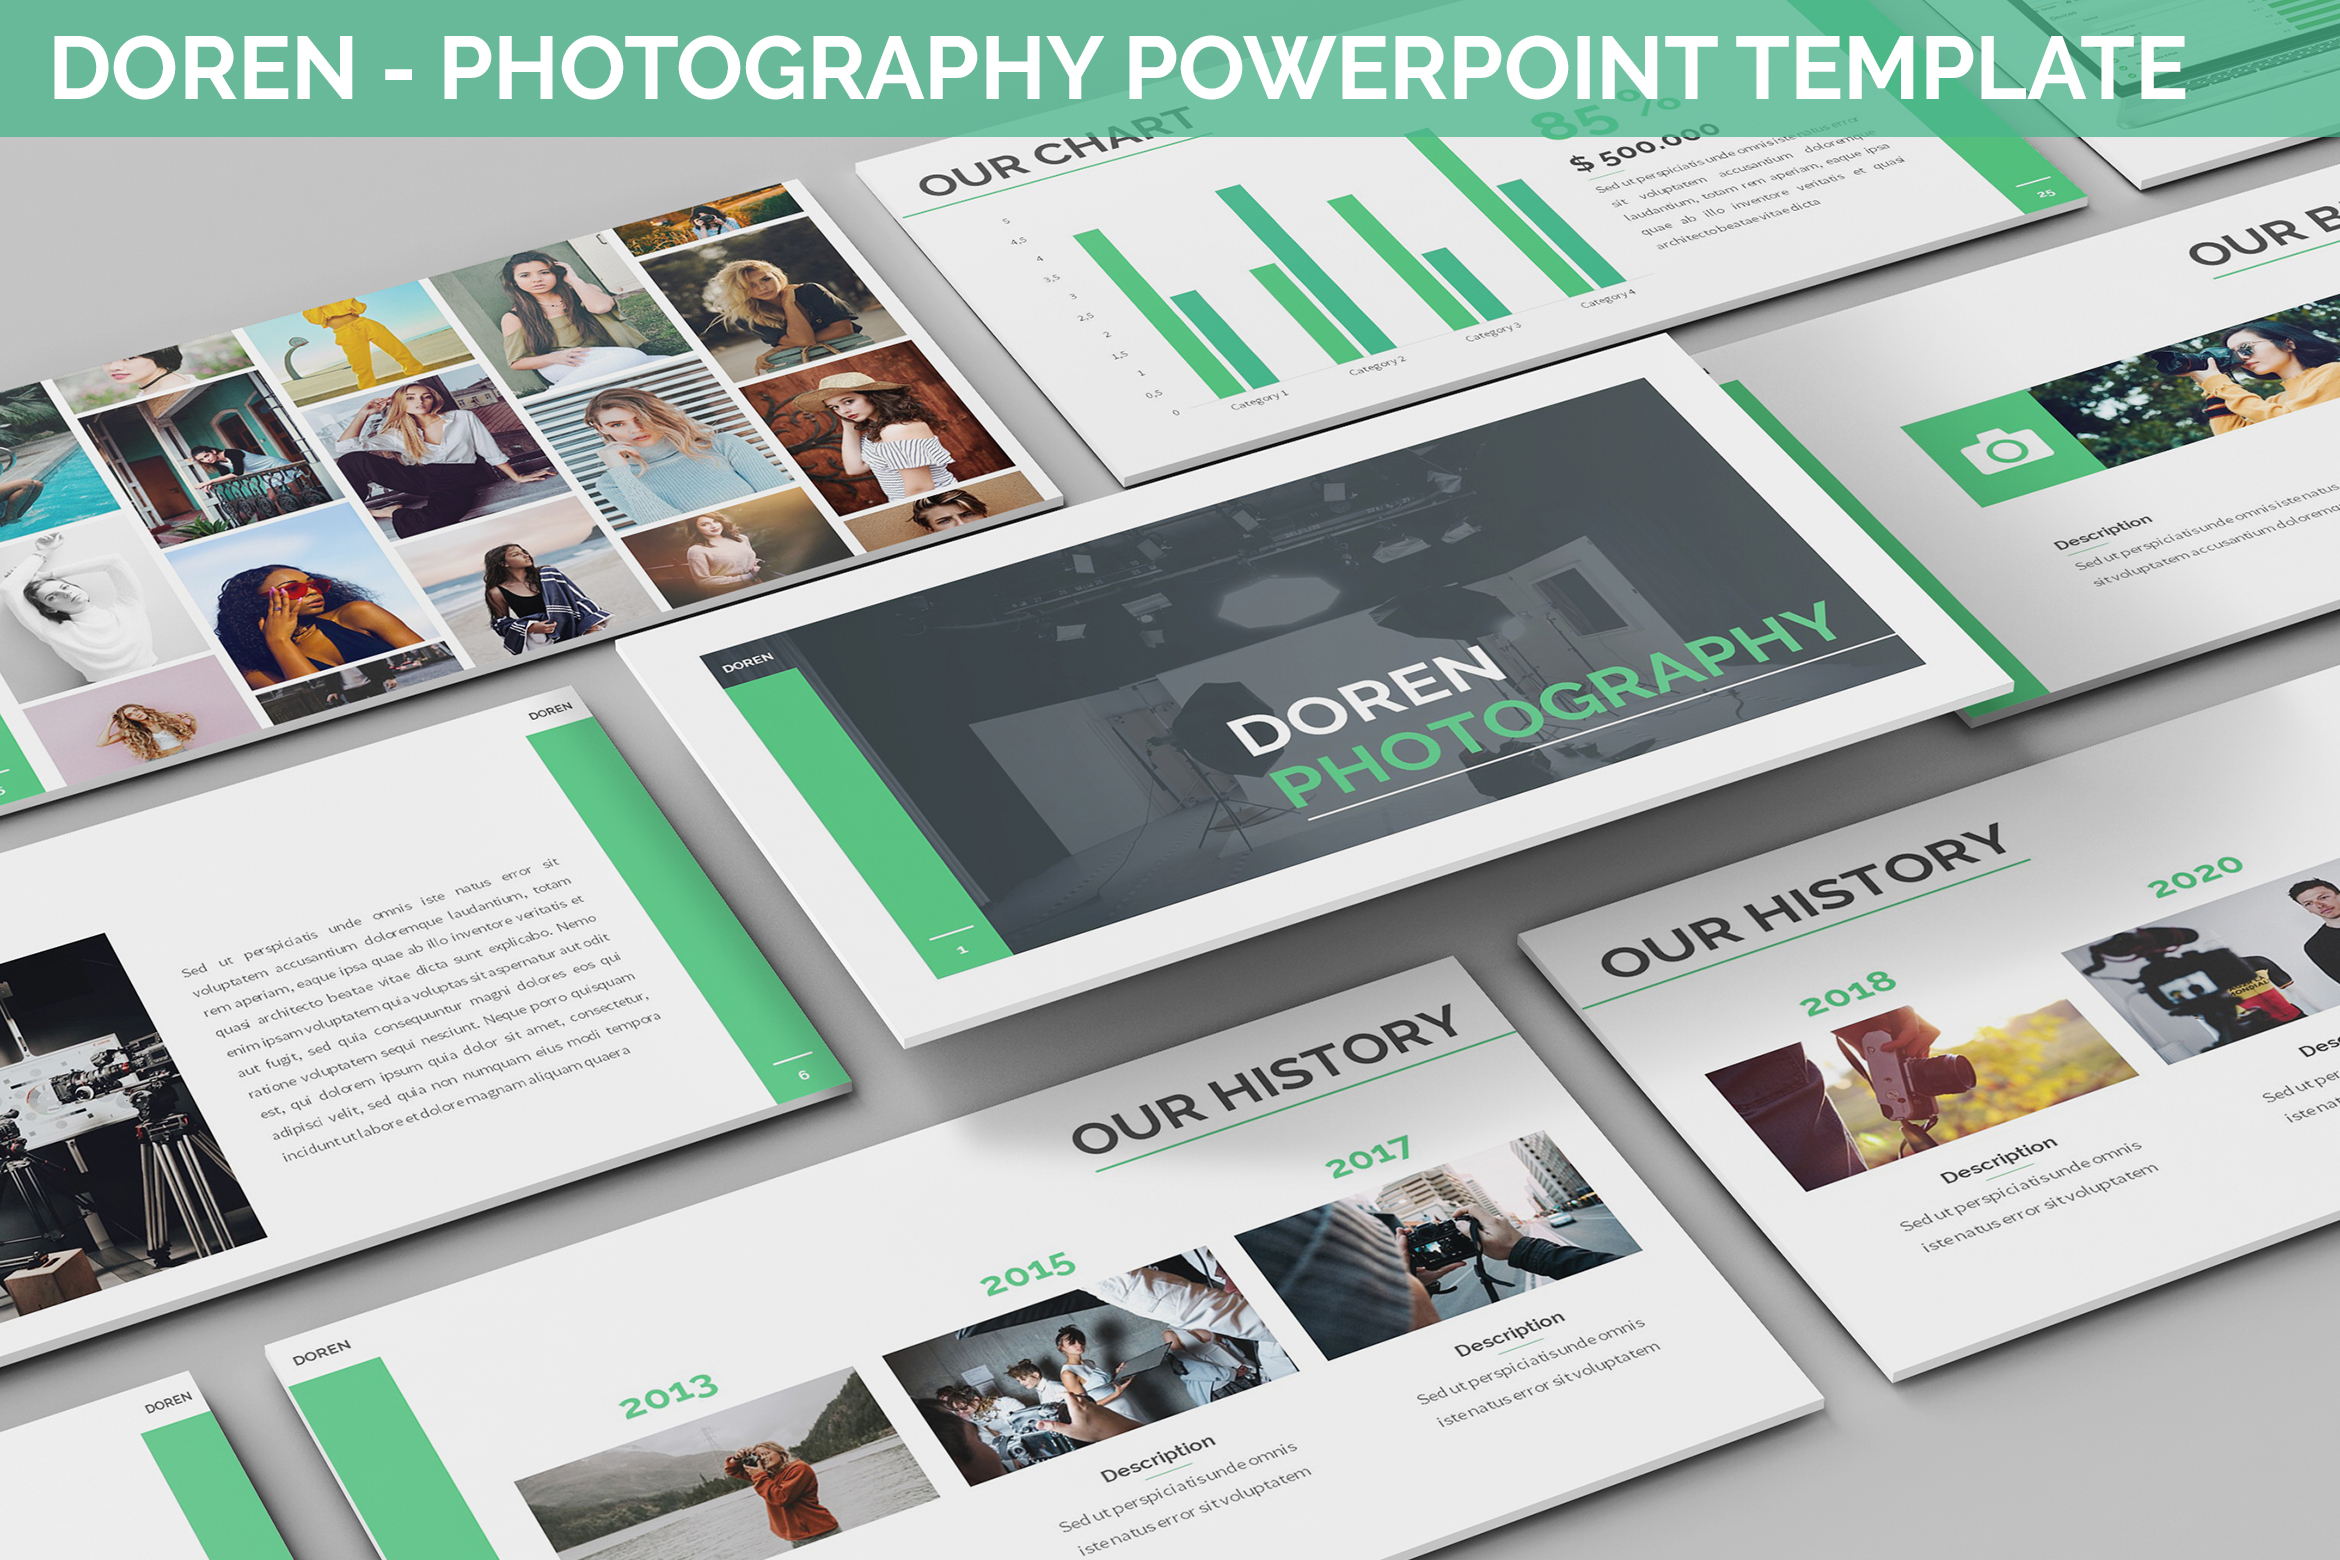 Doren - Photography Powerpoint Template example image 1